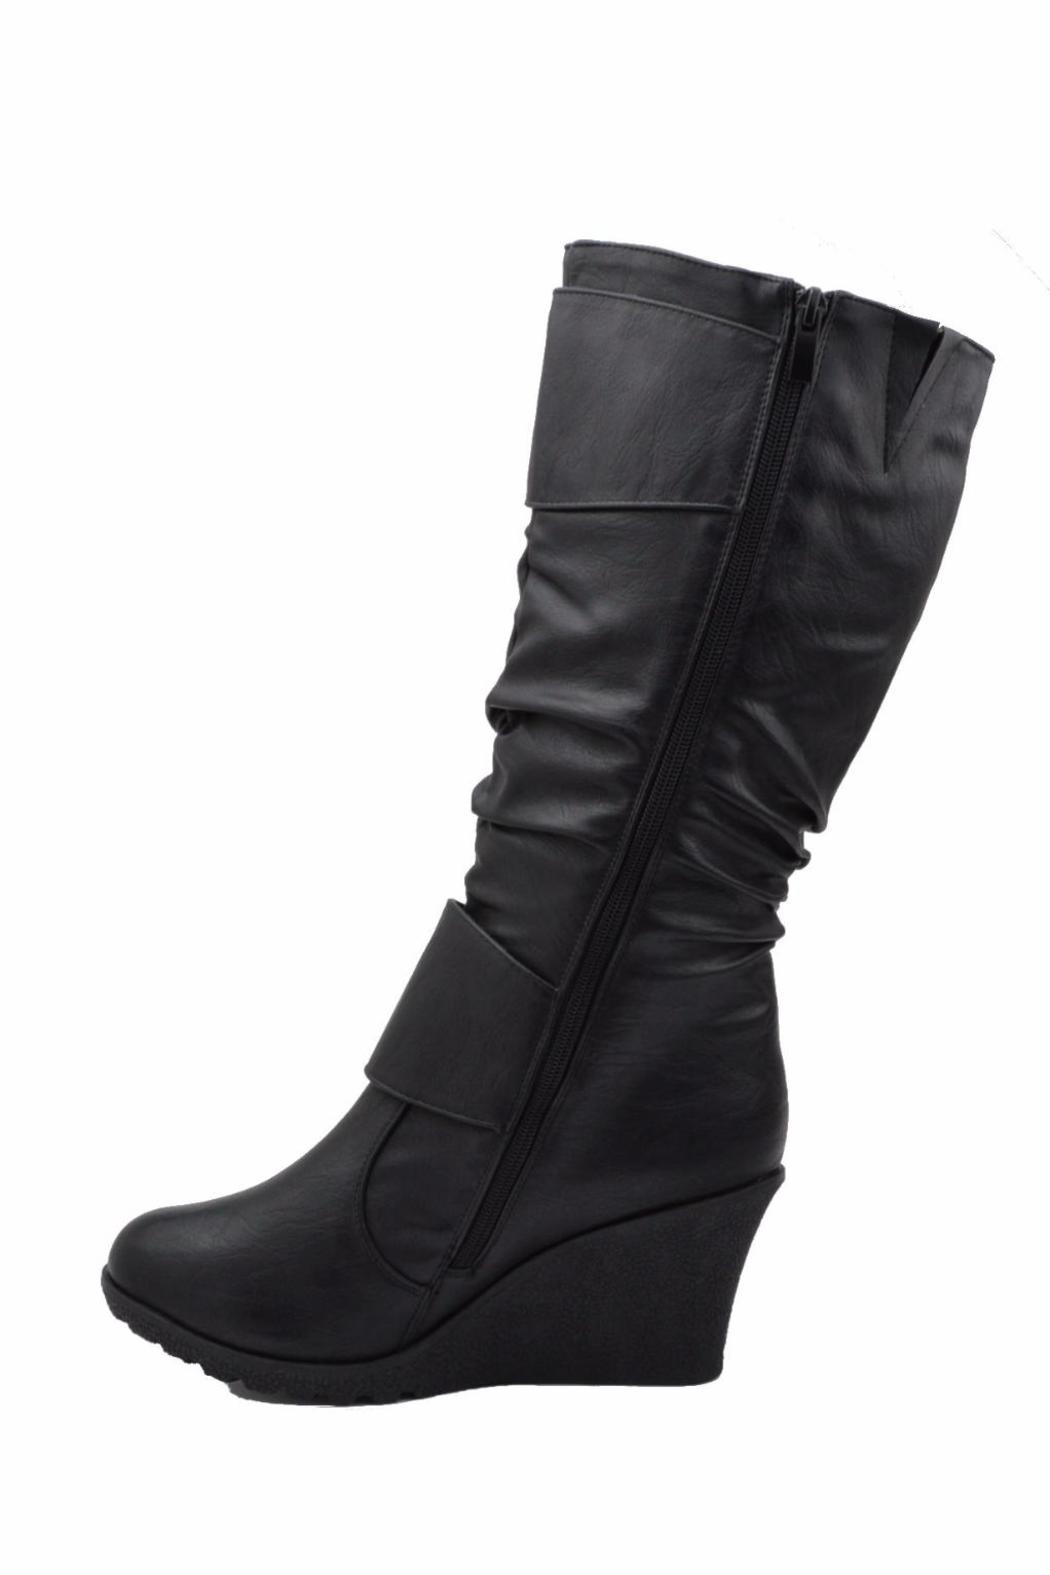 Top Moda Slouched Wedge Boots - Side Cropped Image